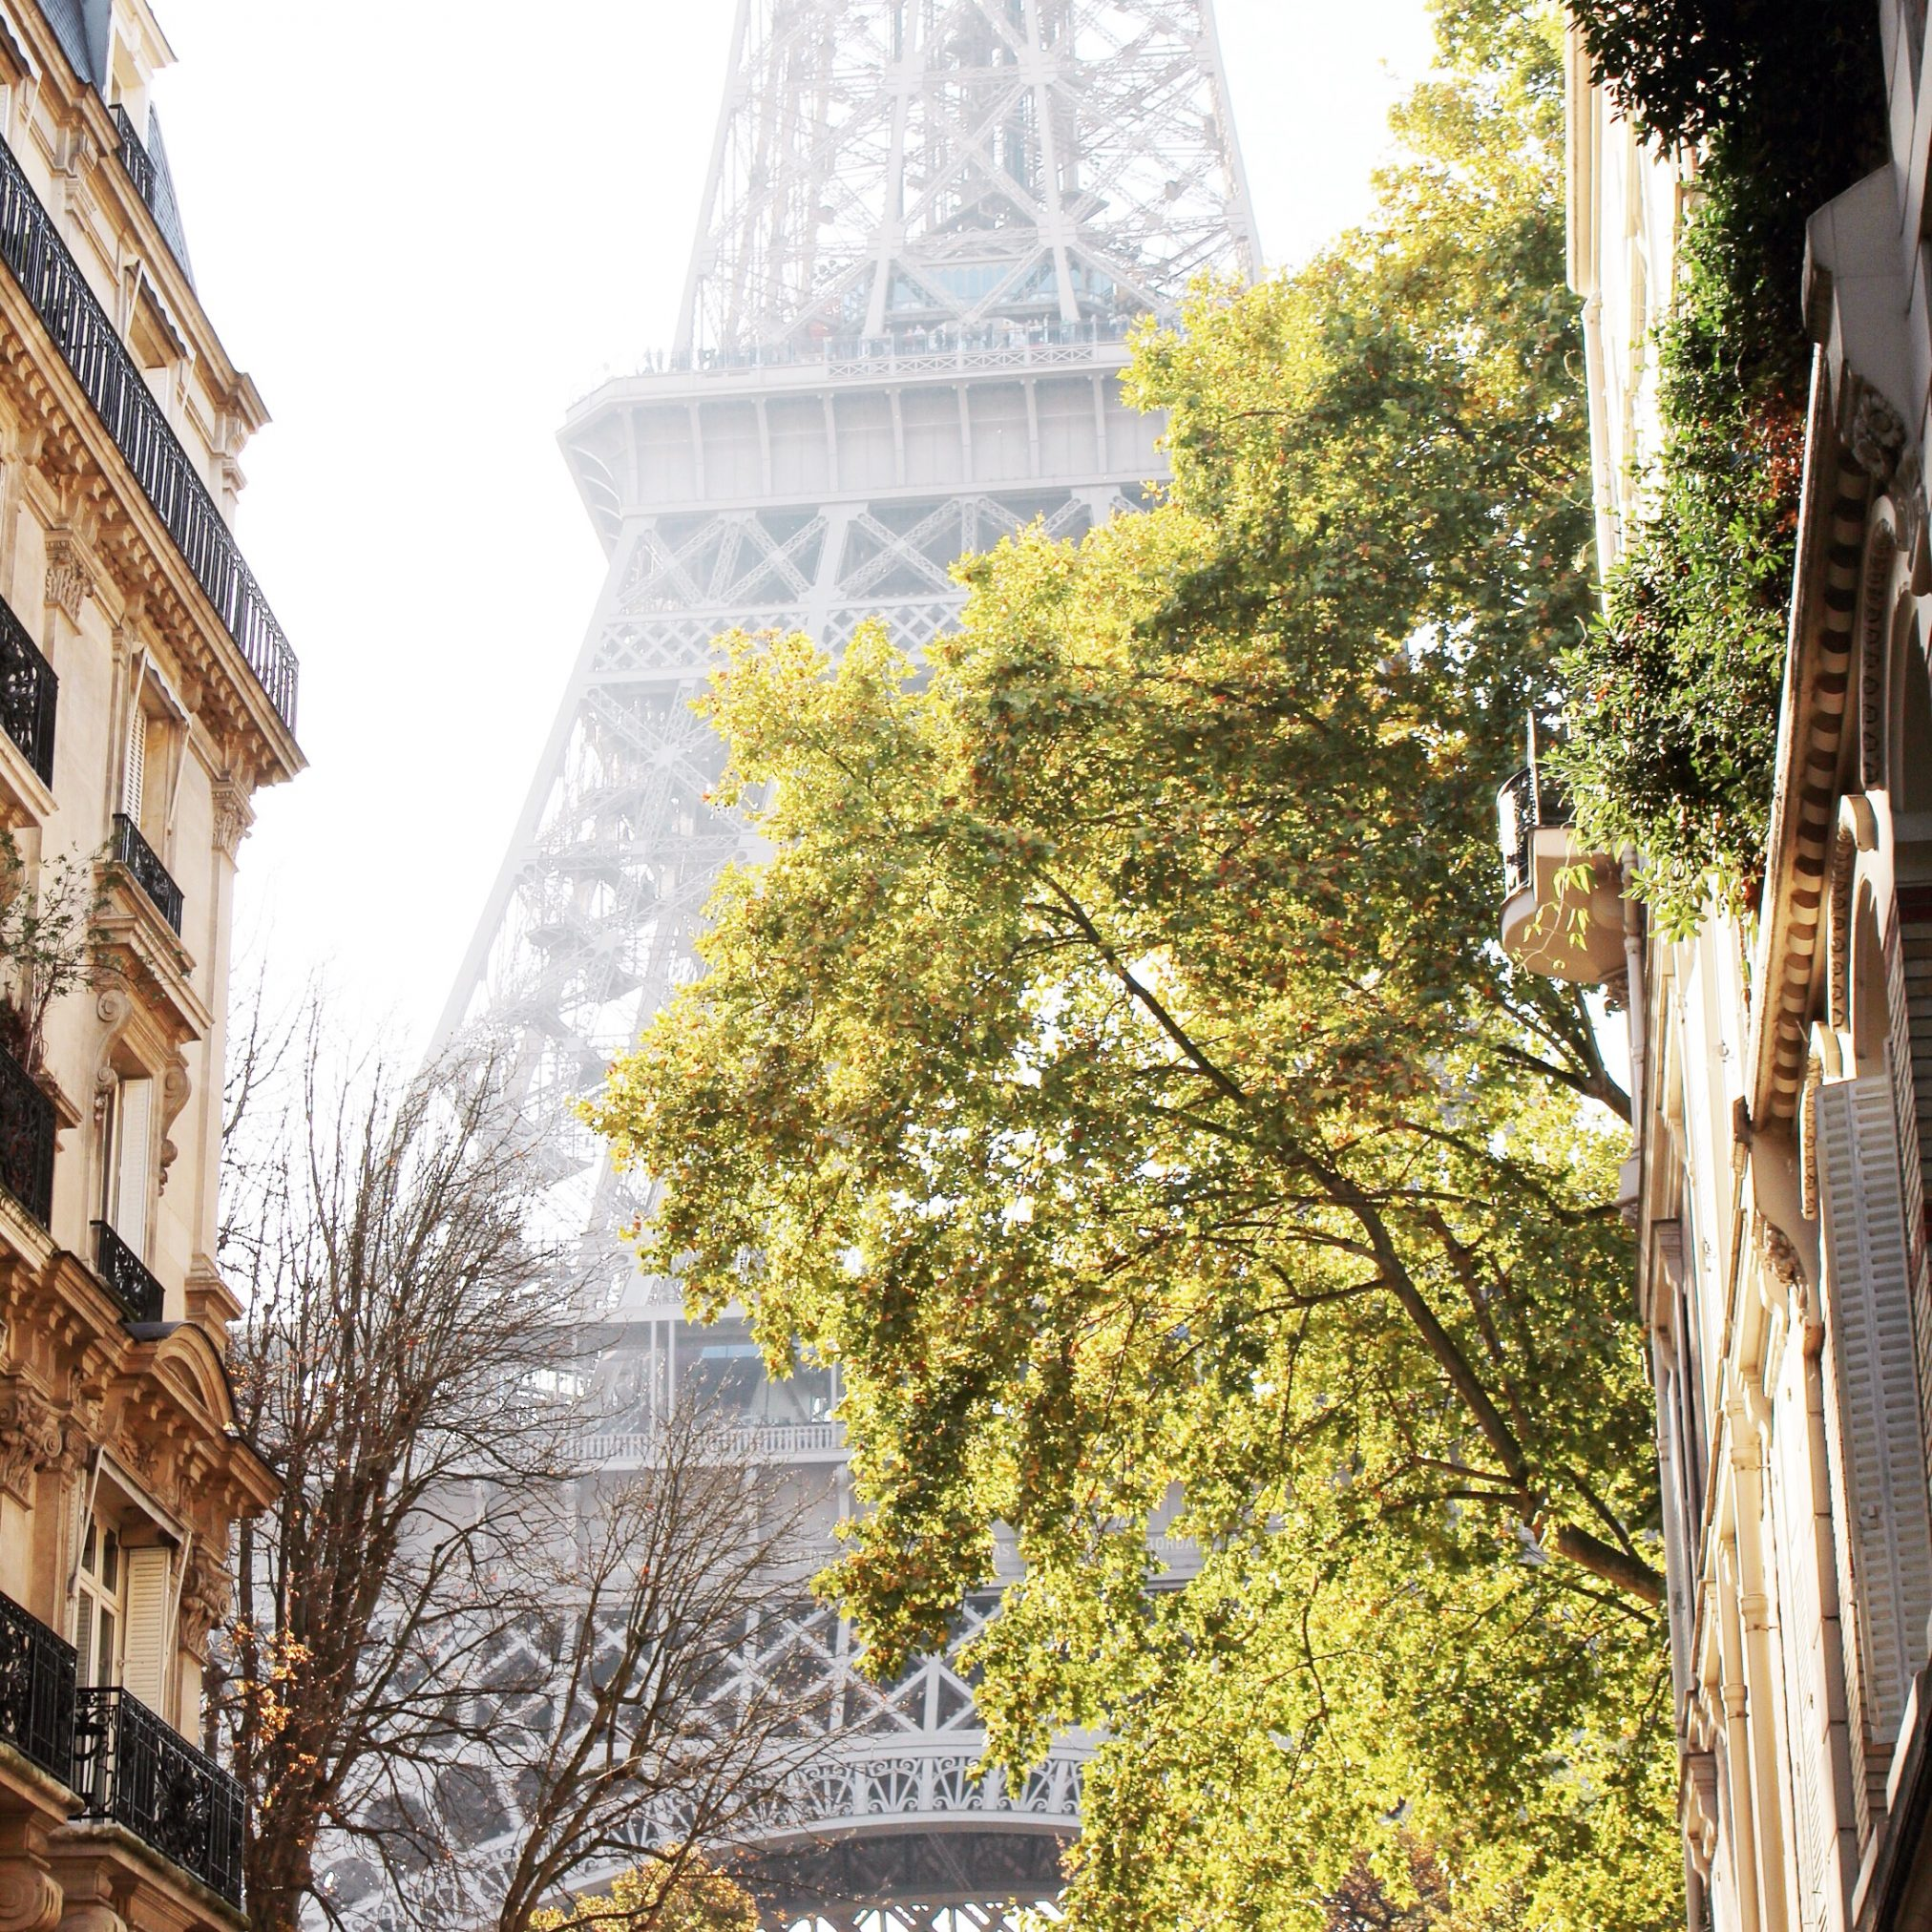 Paris by Myparisstyle for adme